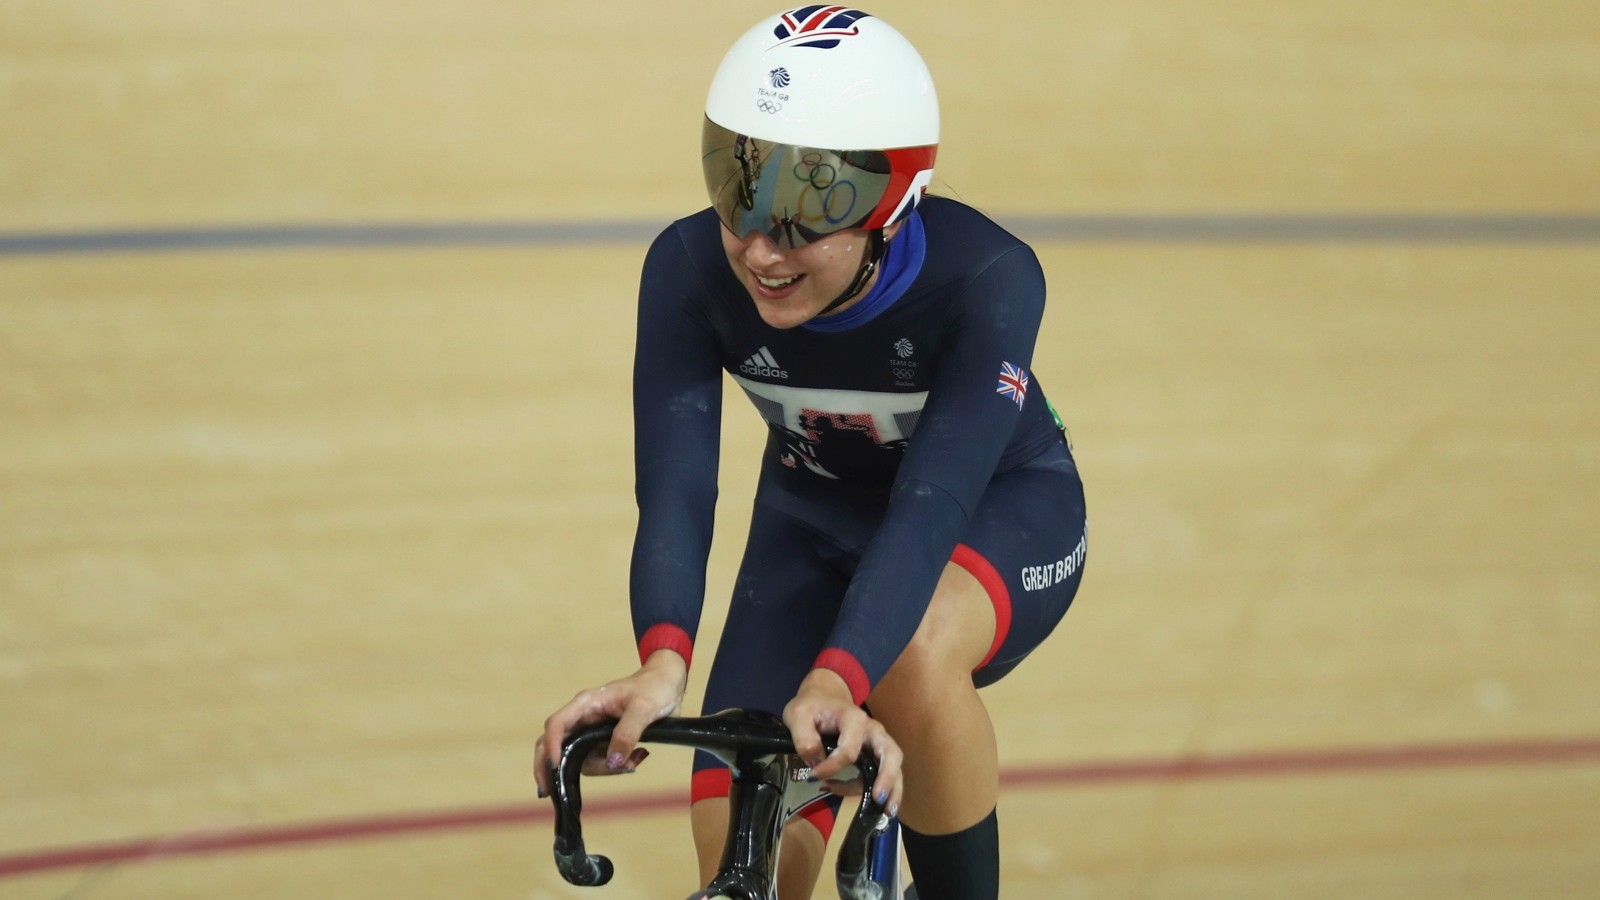 Many track cyclists, such as Laura Kenny, prove that you don't have to be muscly to have explosive power